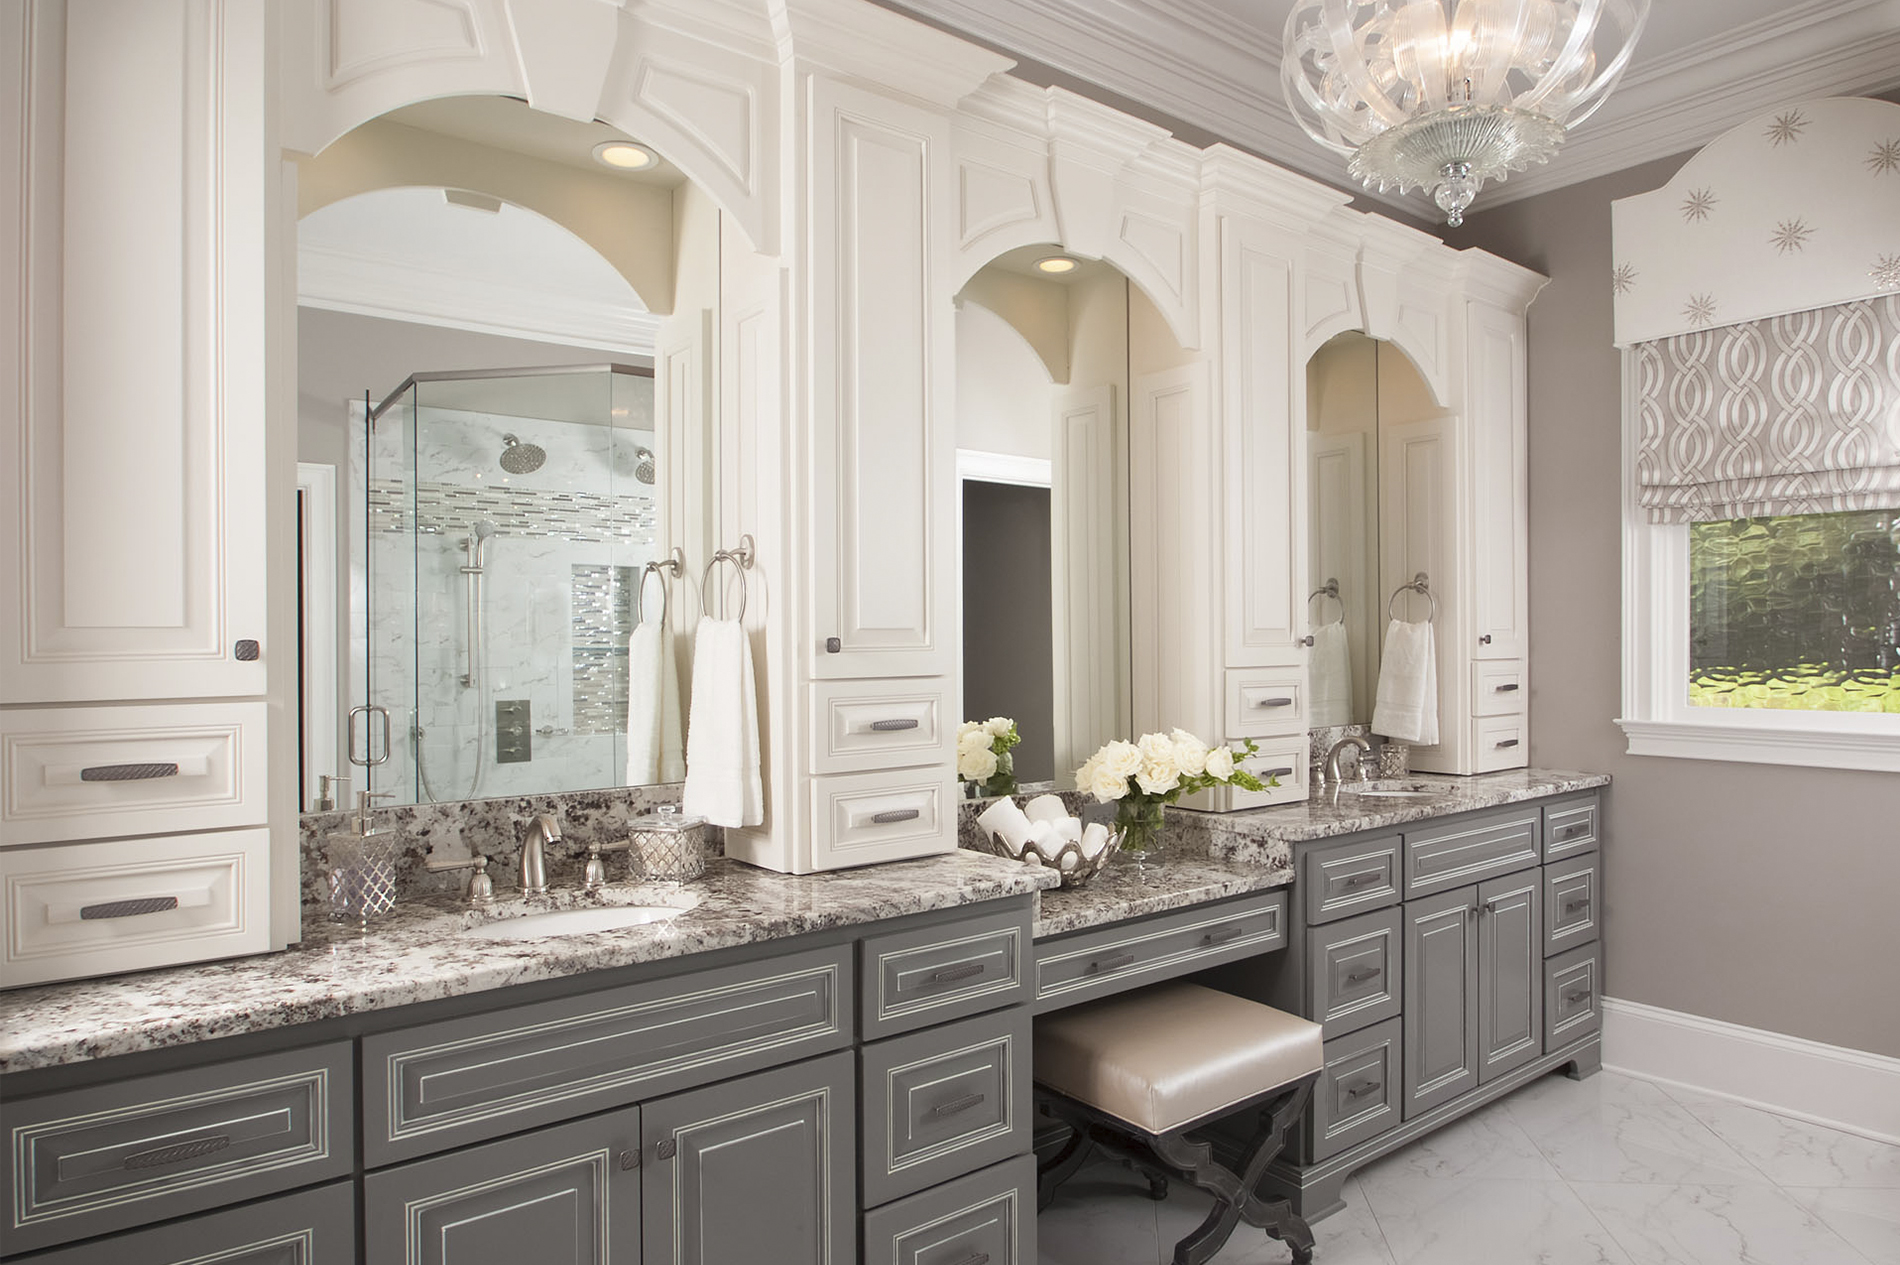 Bathroom Home Interior Design Interior Decorators Designers Home Decorating Services